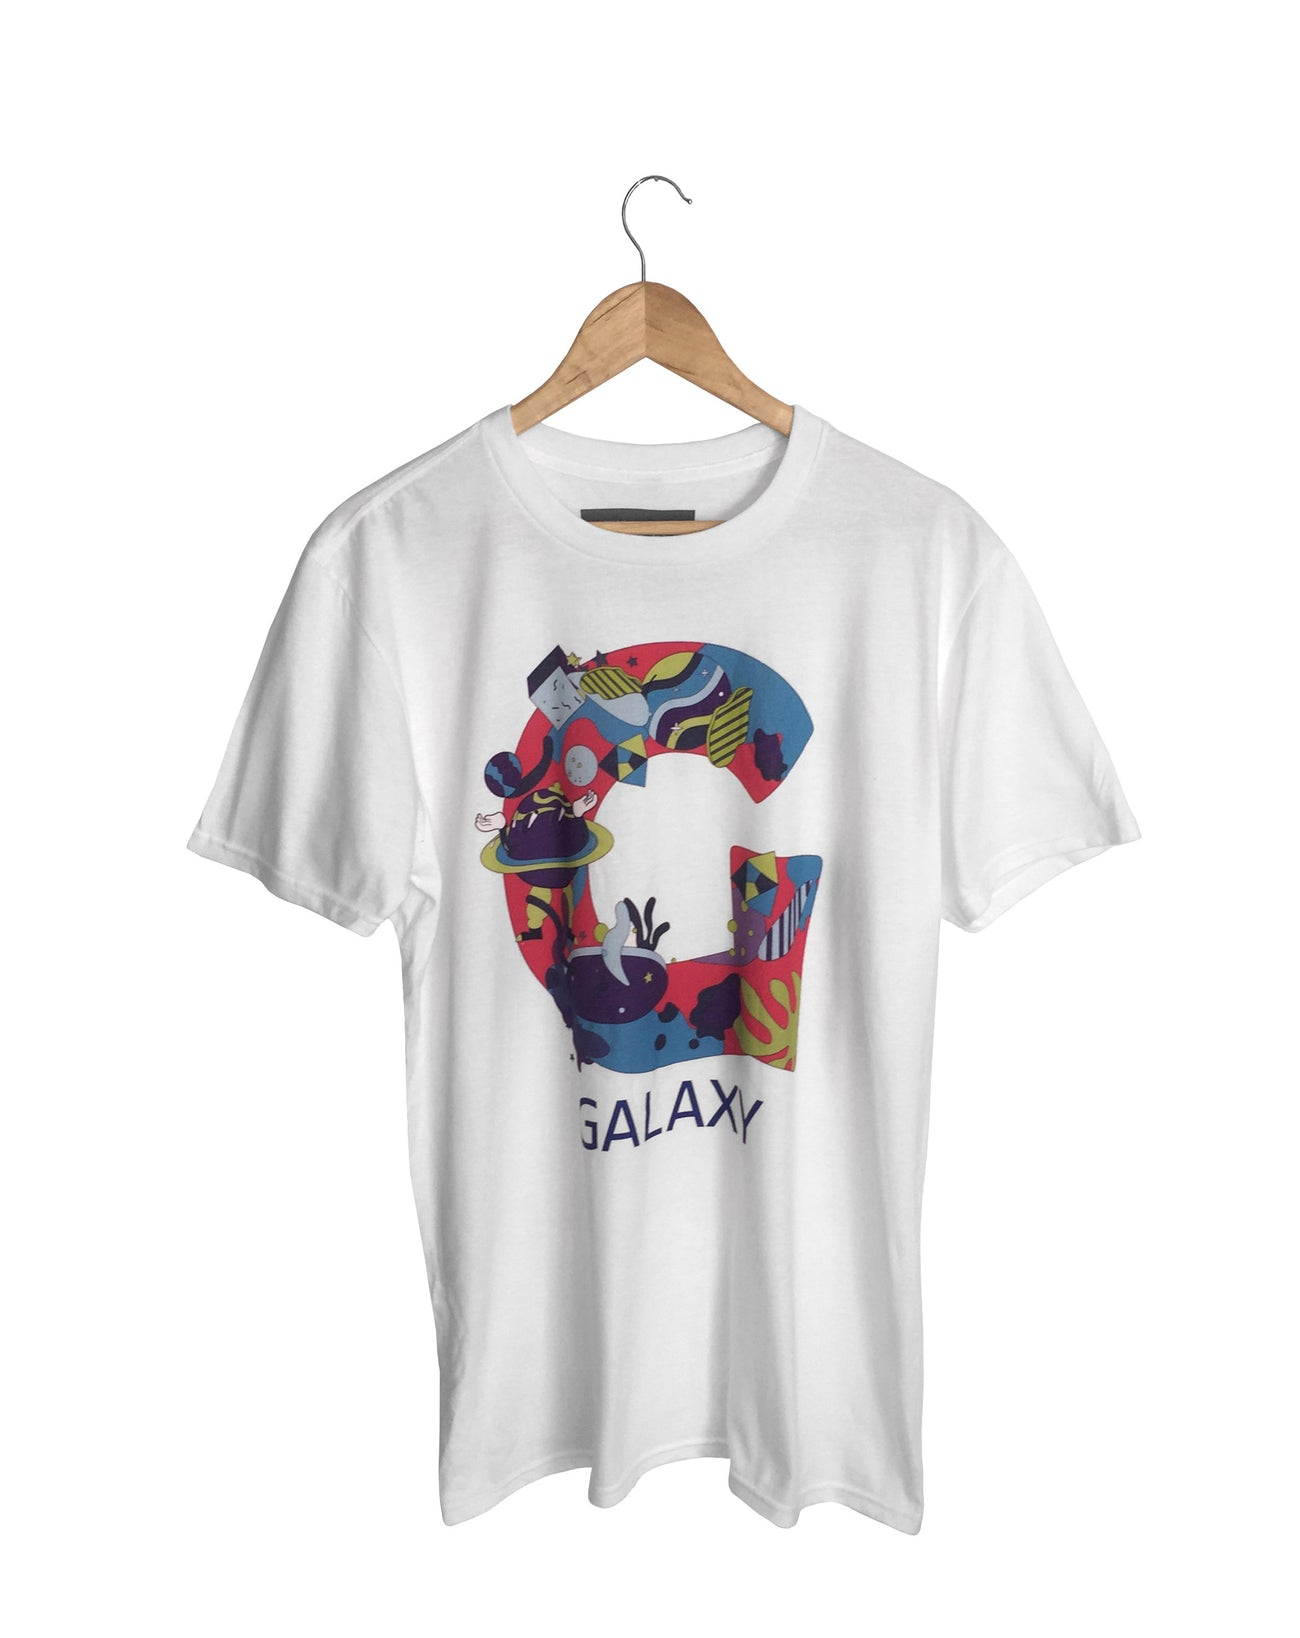 Galaxy by Nancy Kouta (unisex)